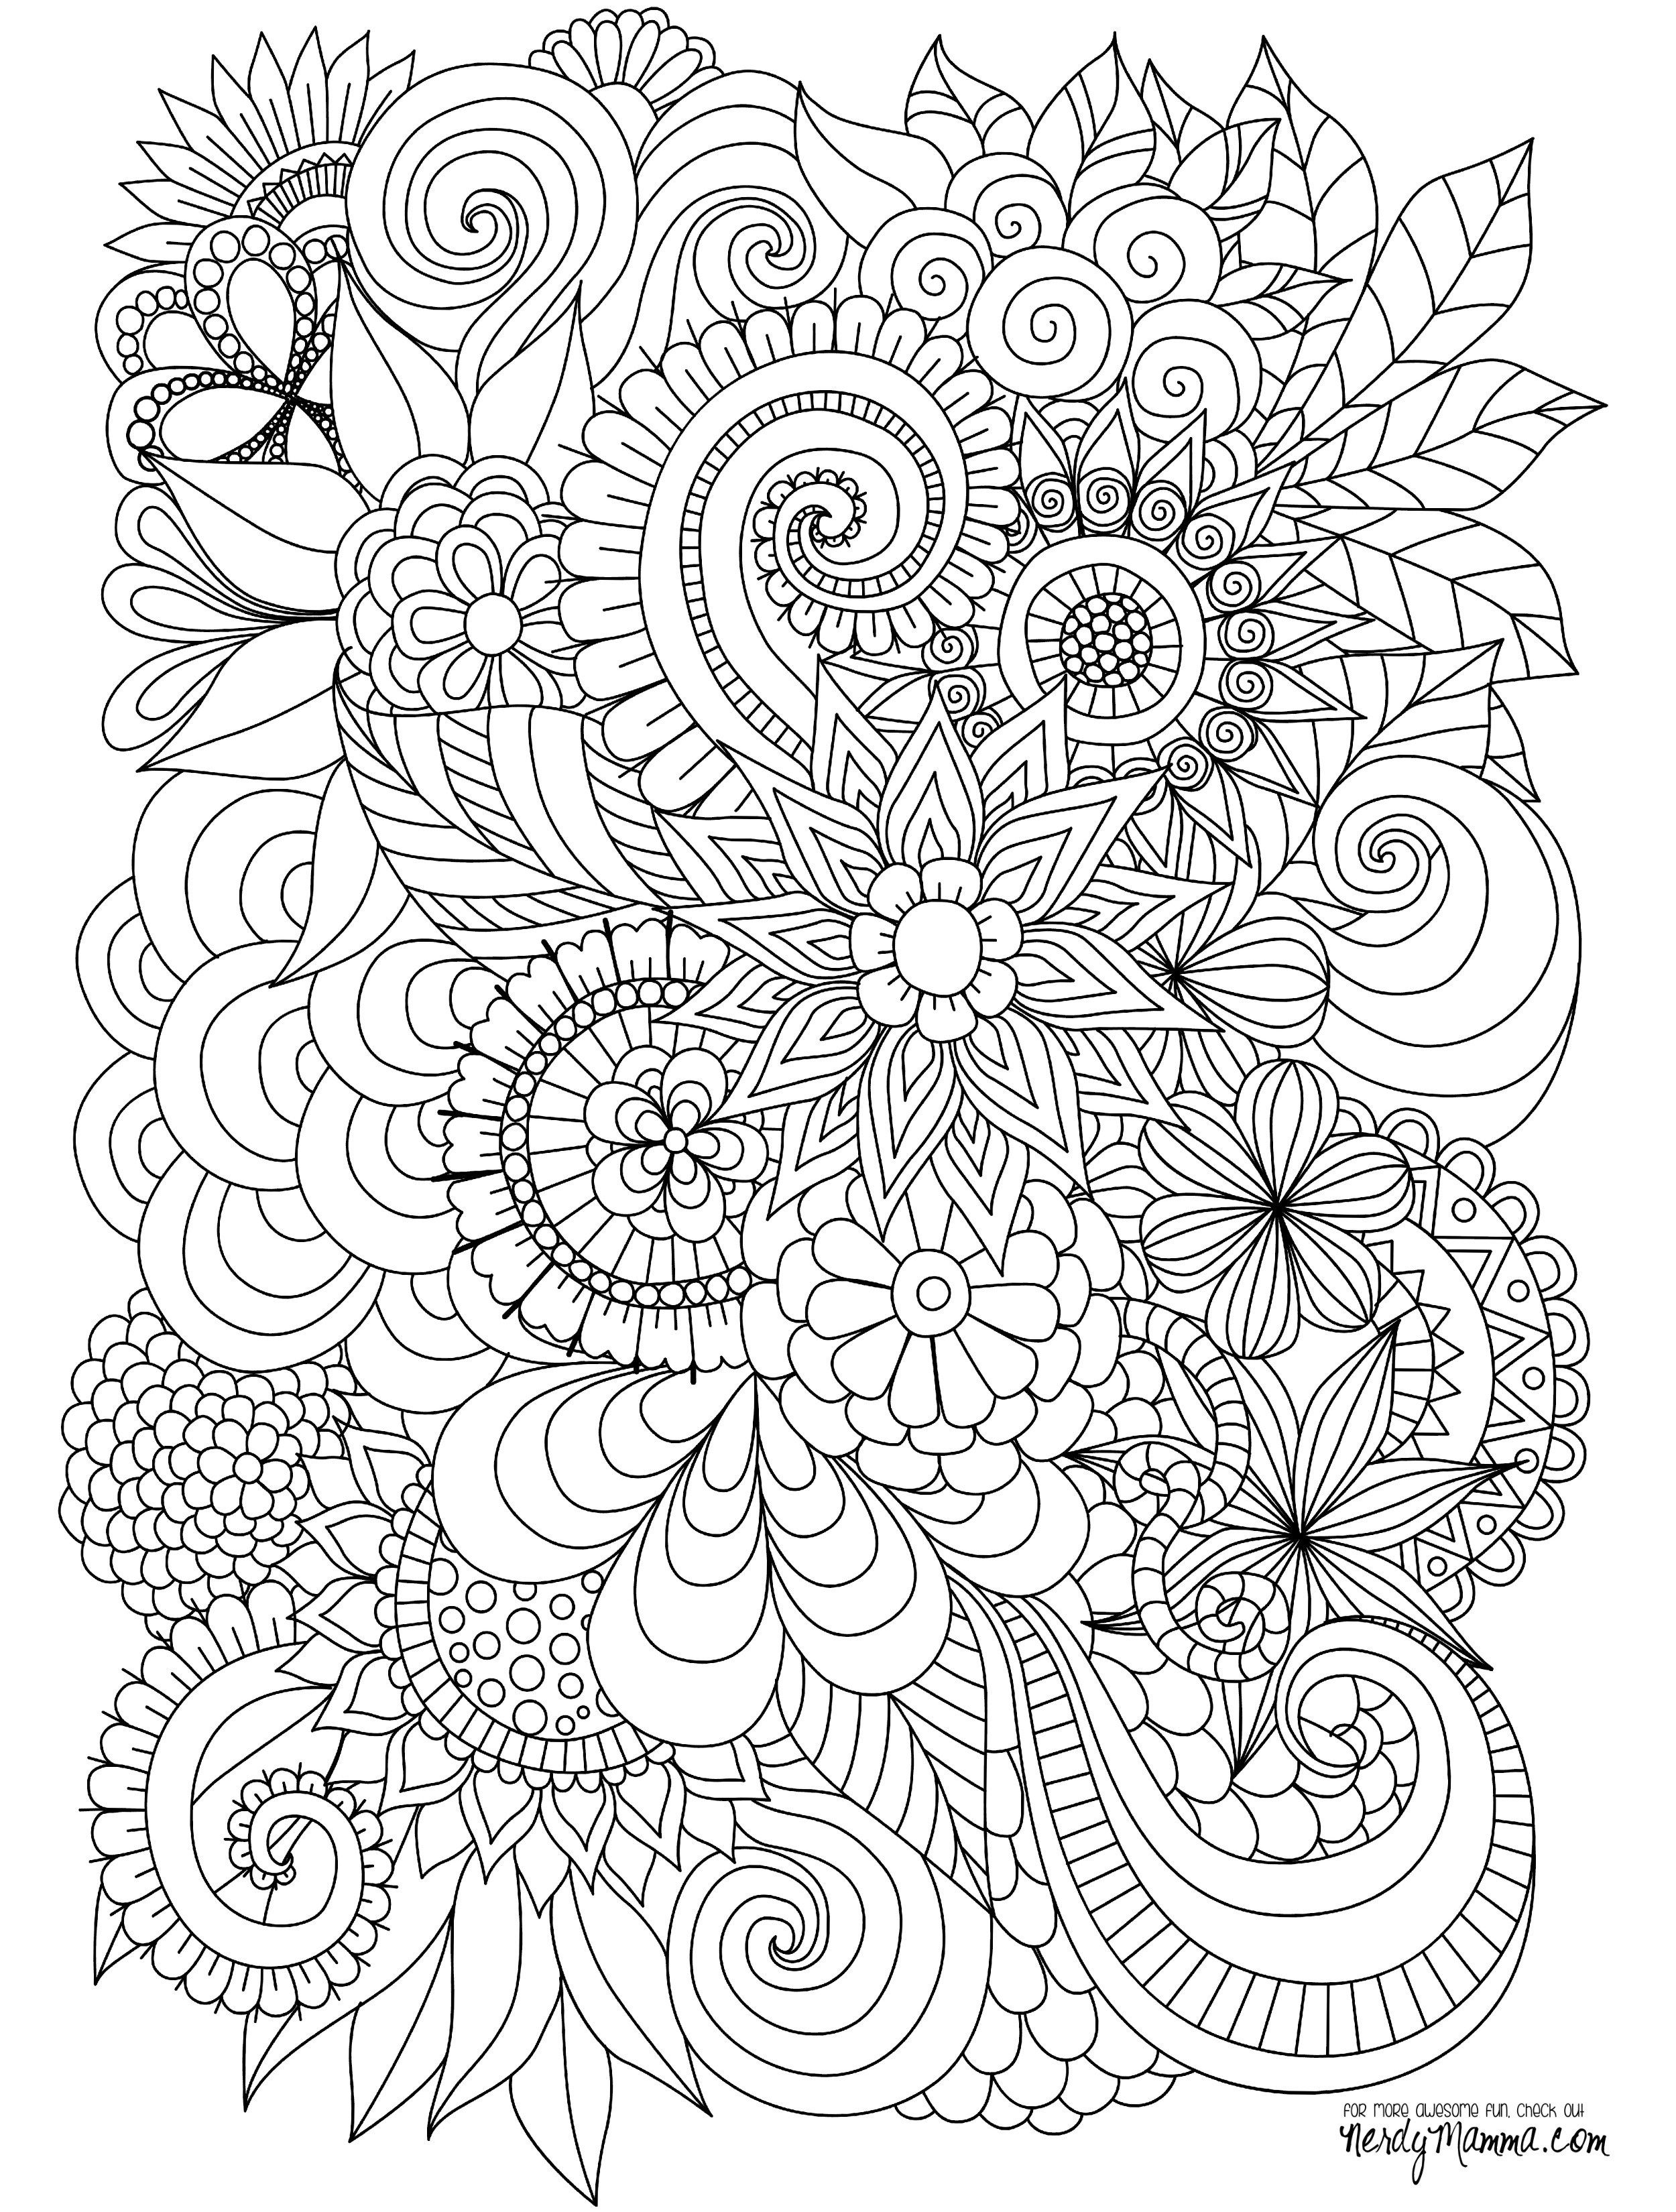 advanced flower coloring pages flower page printable coloring sheets to see more flower flower pages coloring advanced